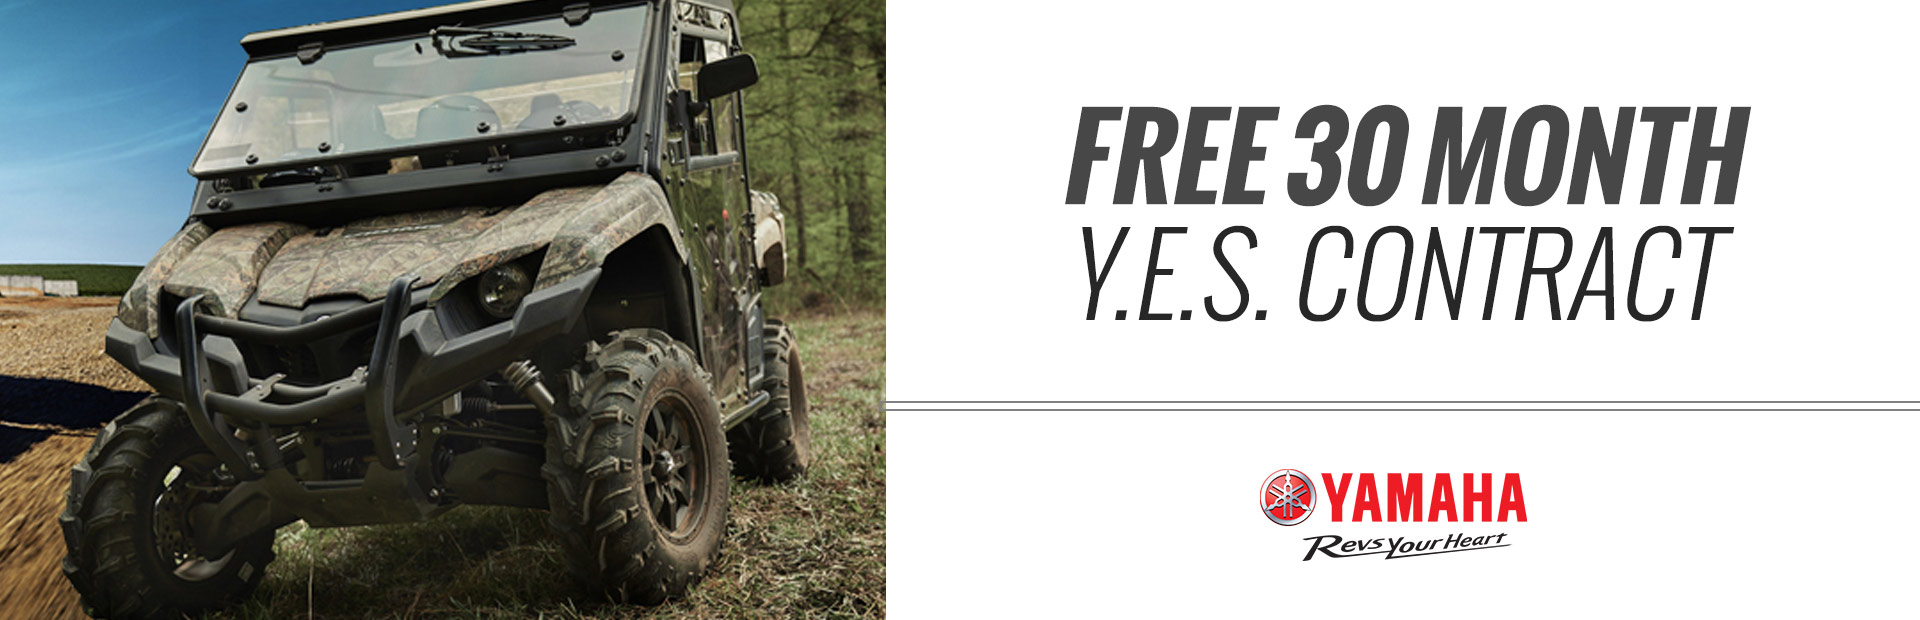 Yamaha: Free 30 month Y.E.S. Contract